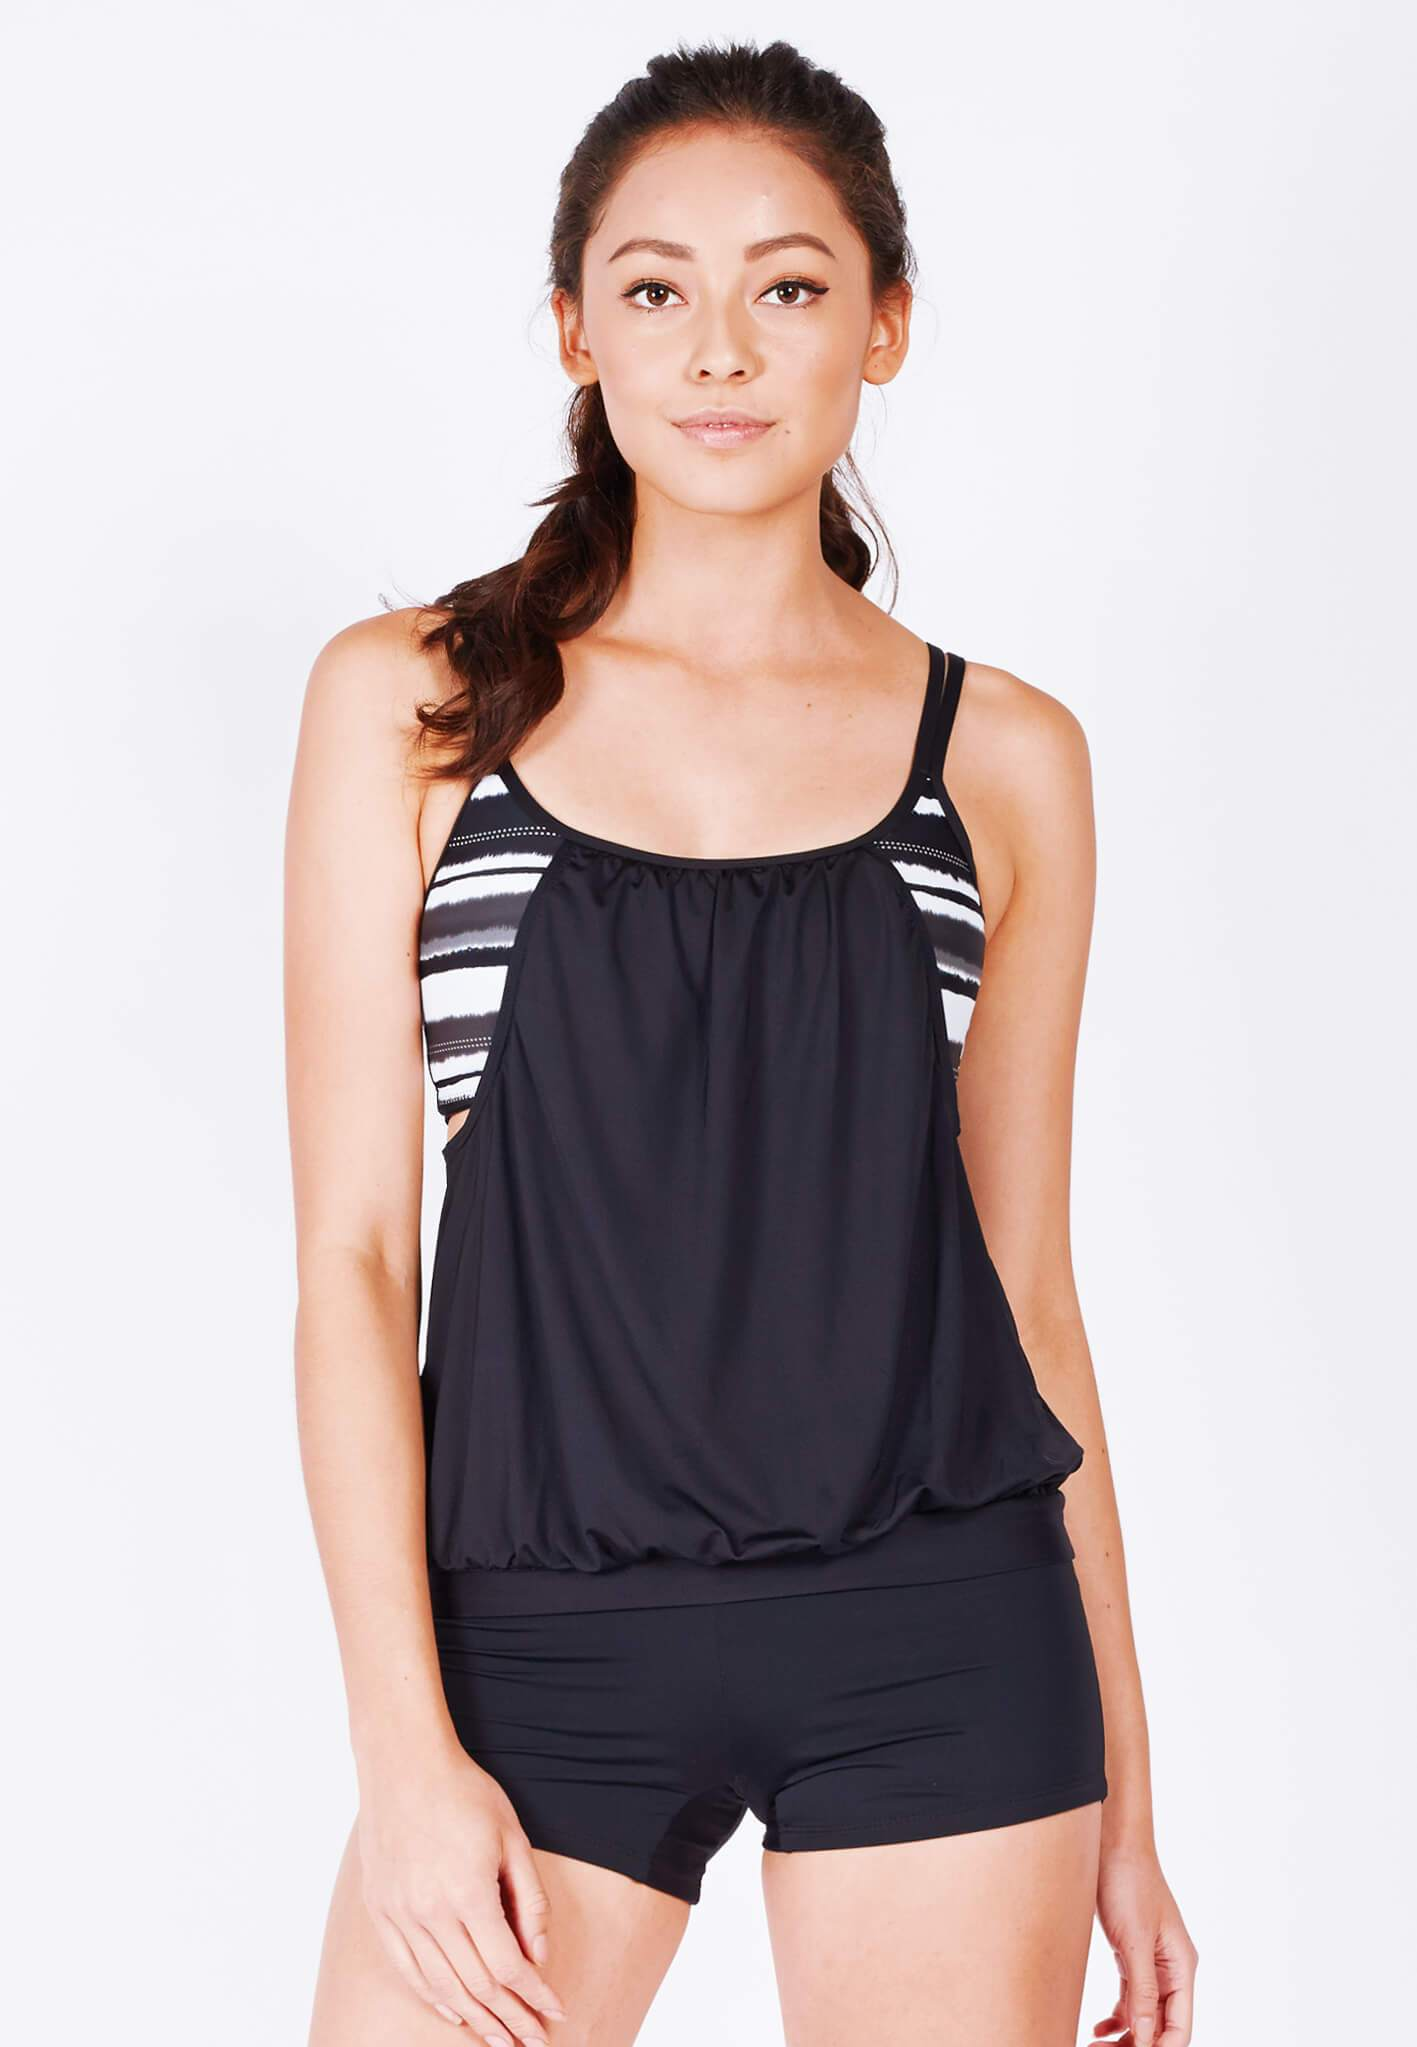 2-in-1 Blouson Tankini II Black Top in Paintbrush Print (XS - 2XL) - FUNFIT